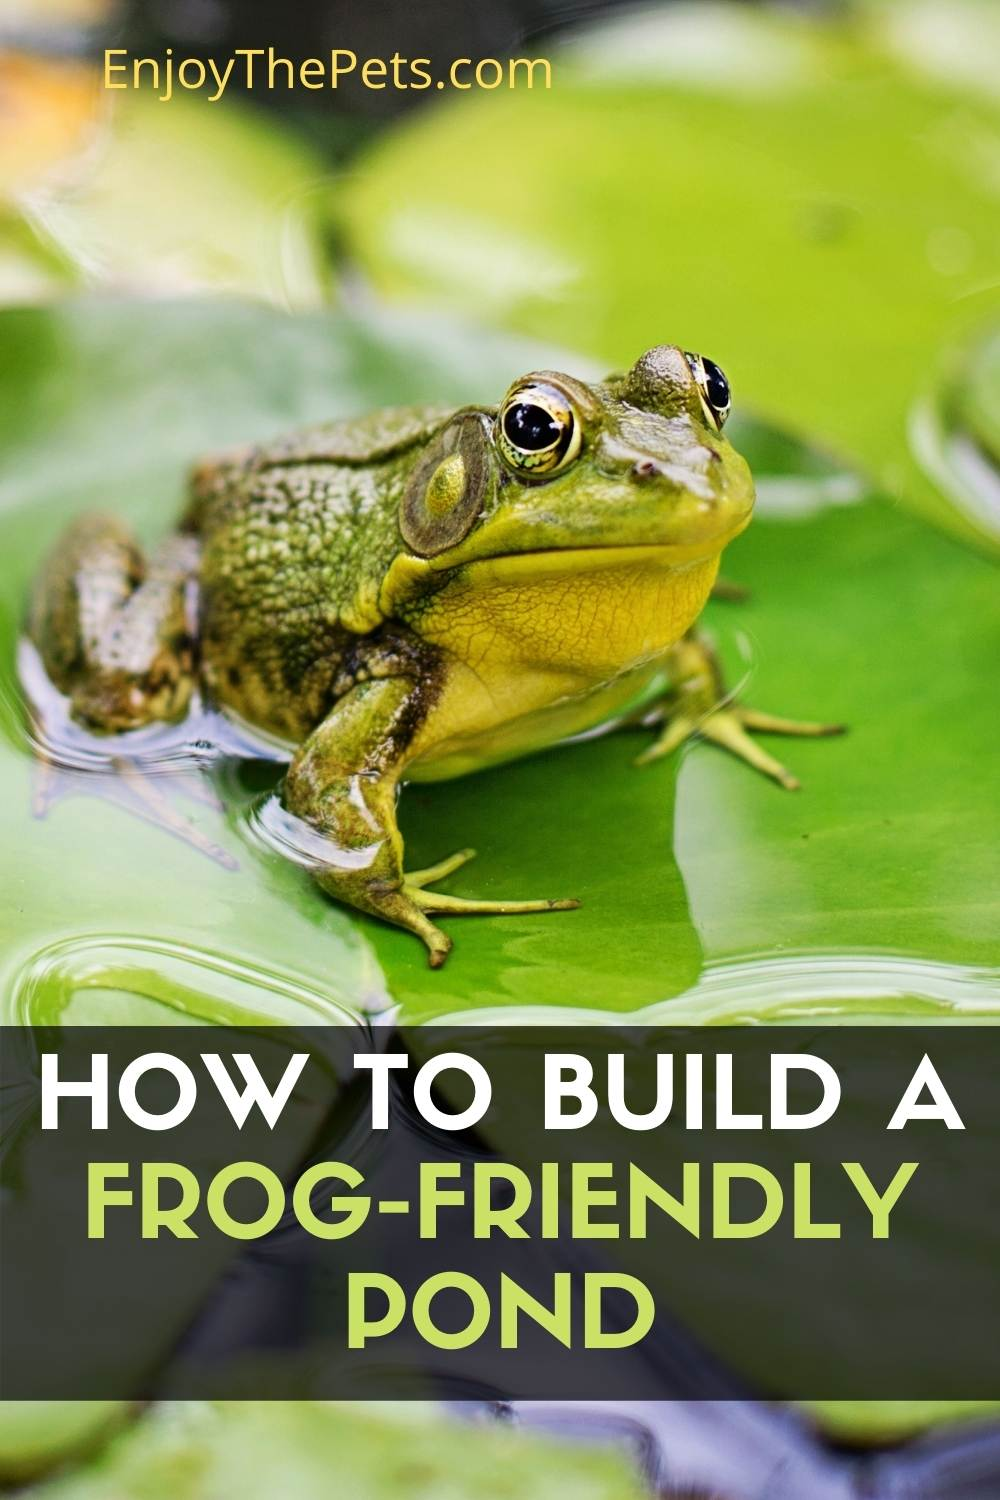 How to Build a Frog-Friendly Pond